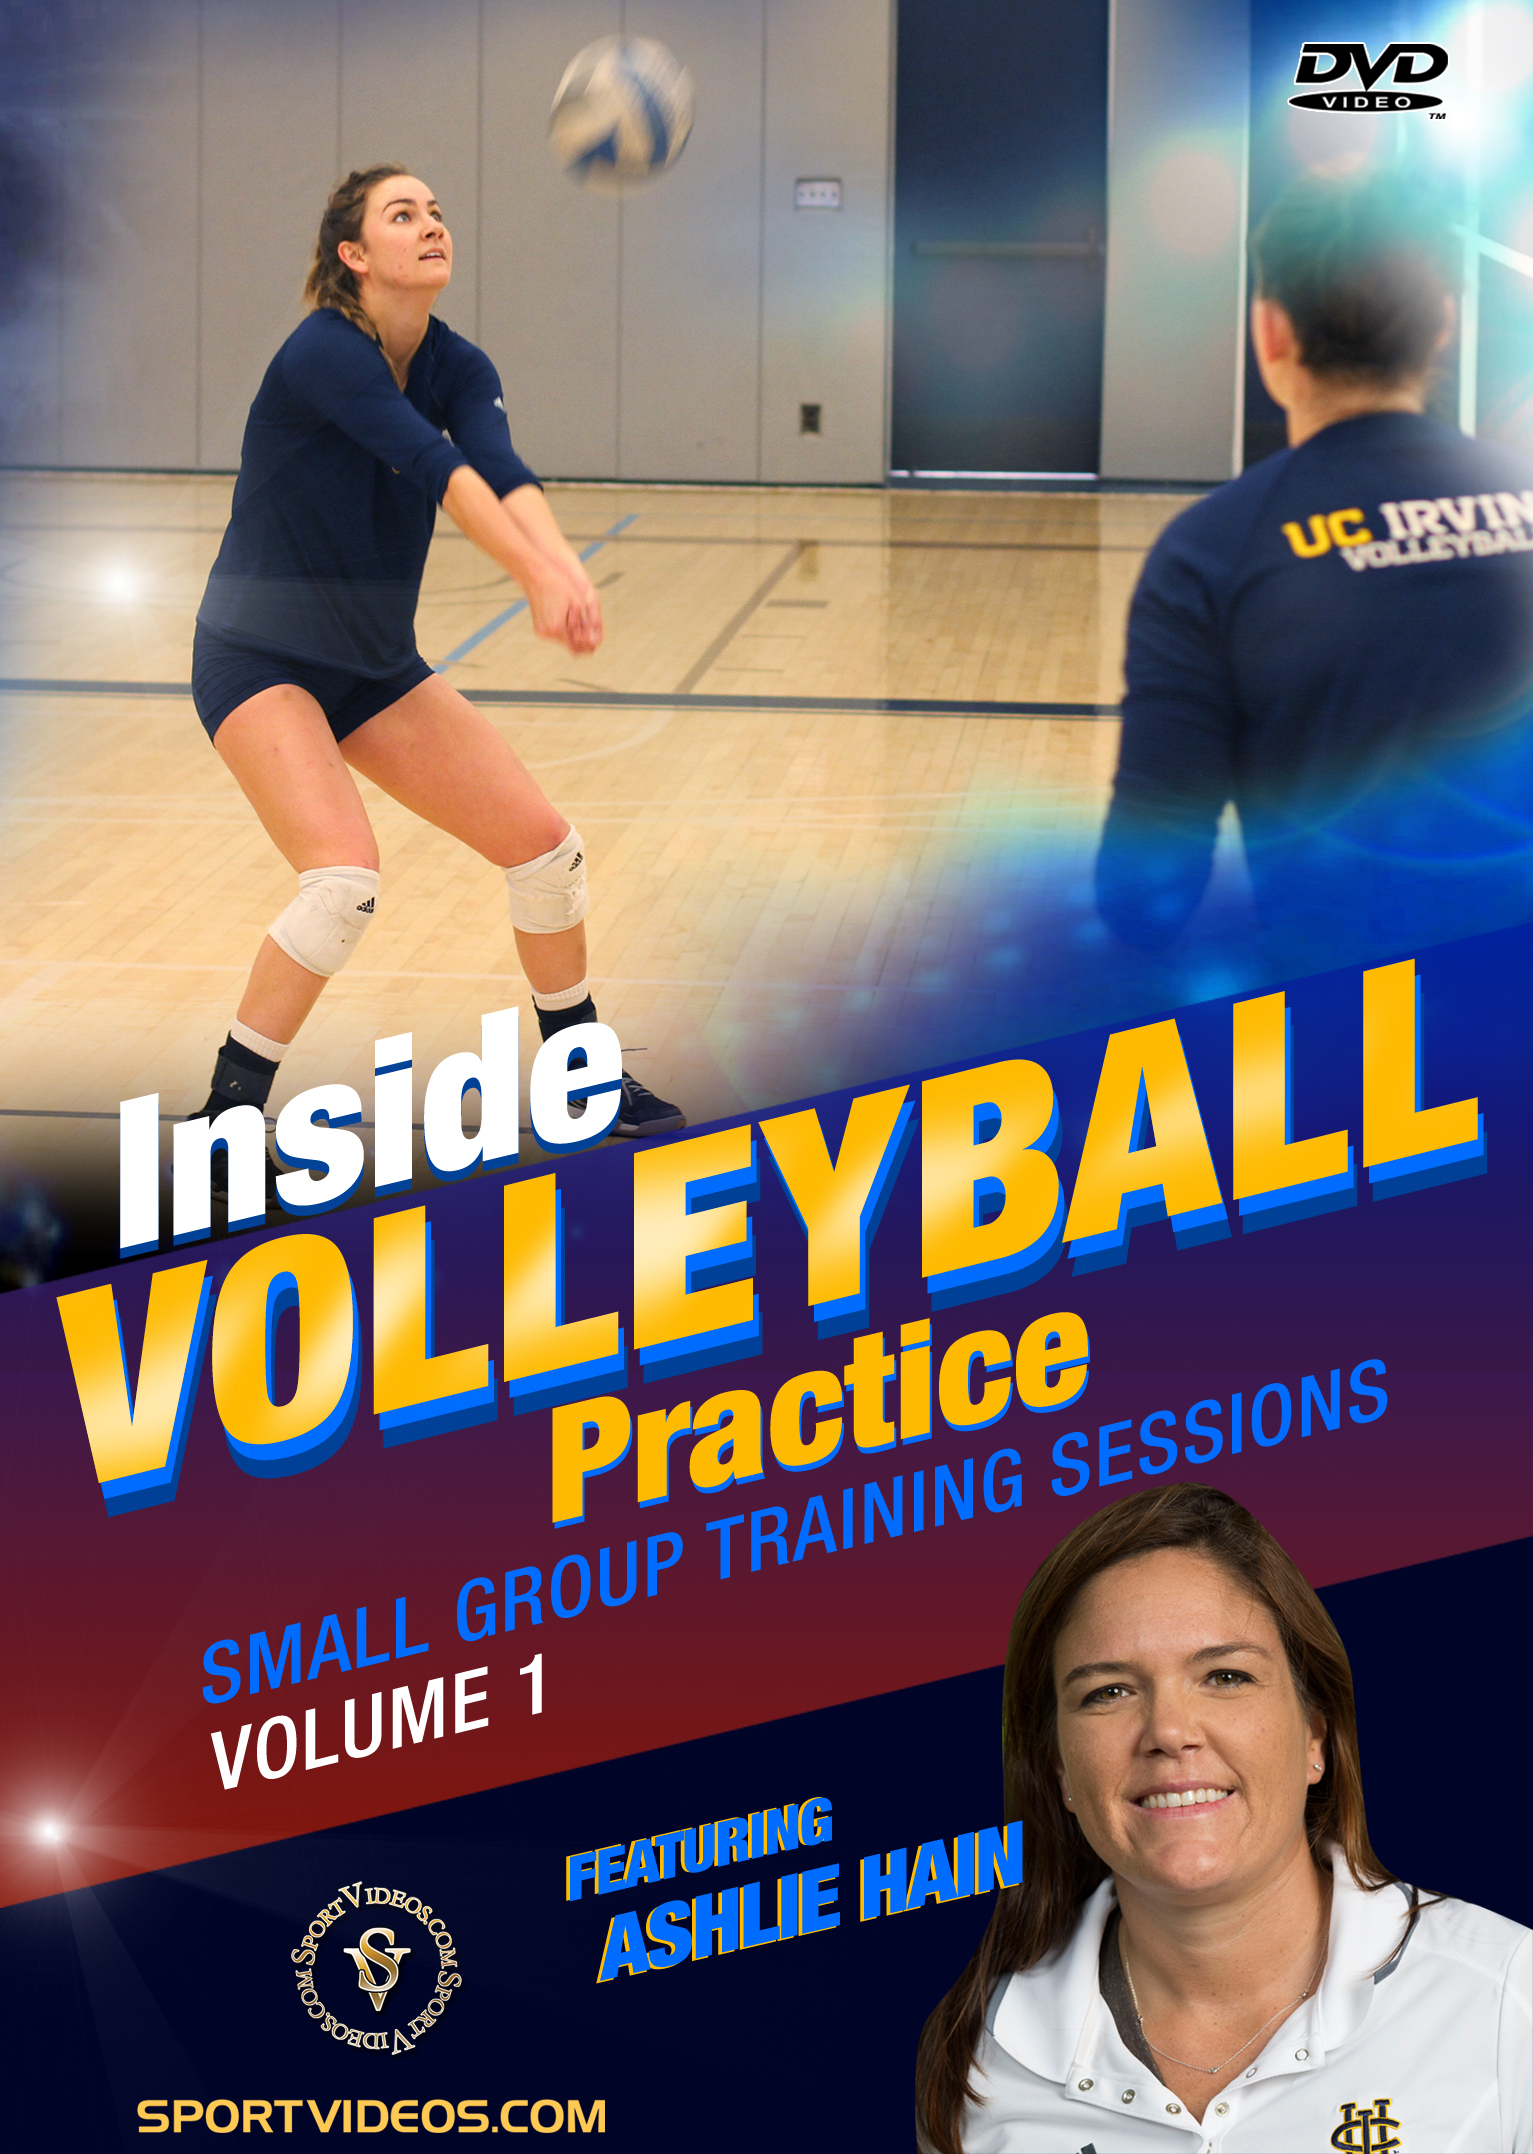 Inside Volleyball Practice: Small Group Training Sessions Vol. 1